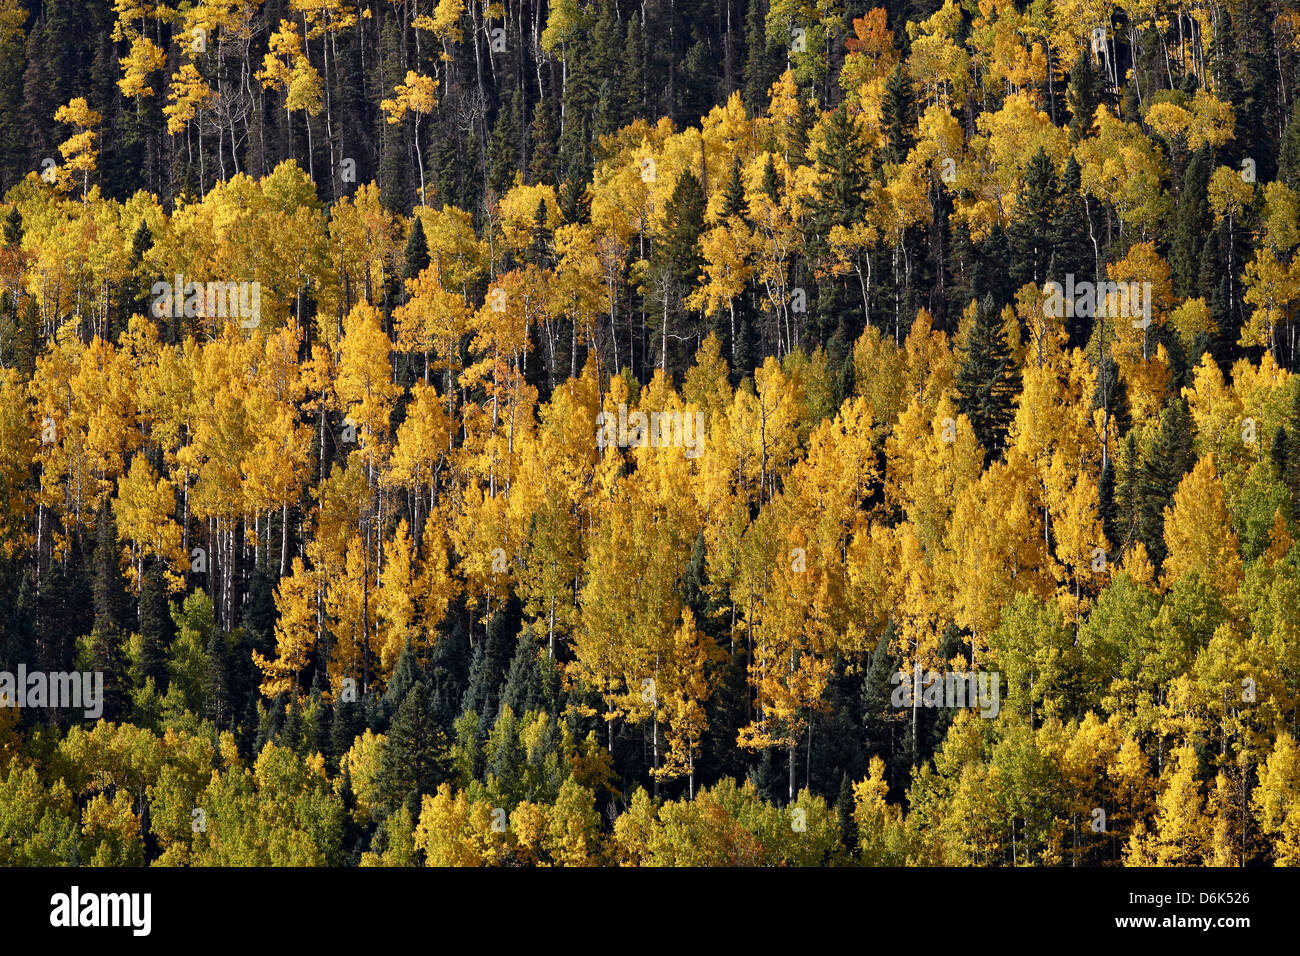 Yellow and orange aspens among evergreens in the fall, Uncompahgre National Forest, Colorado, USA - Stock Image